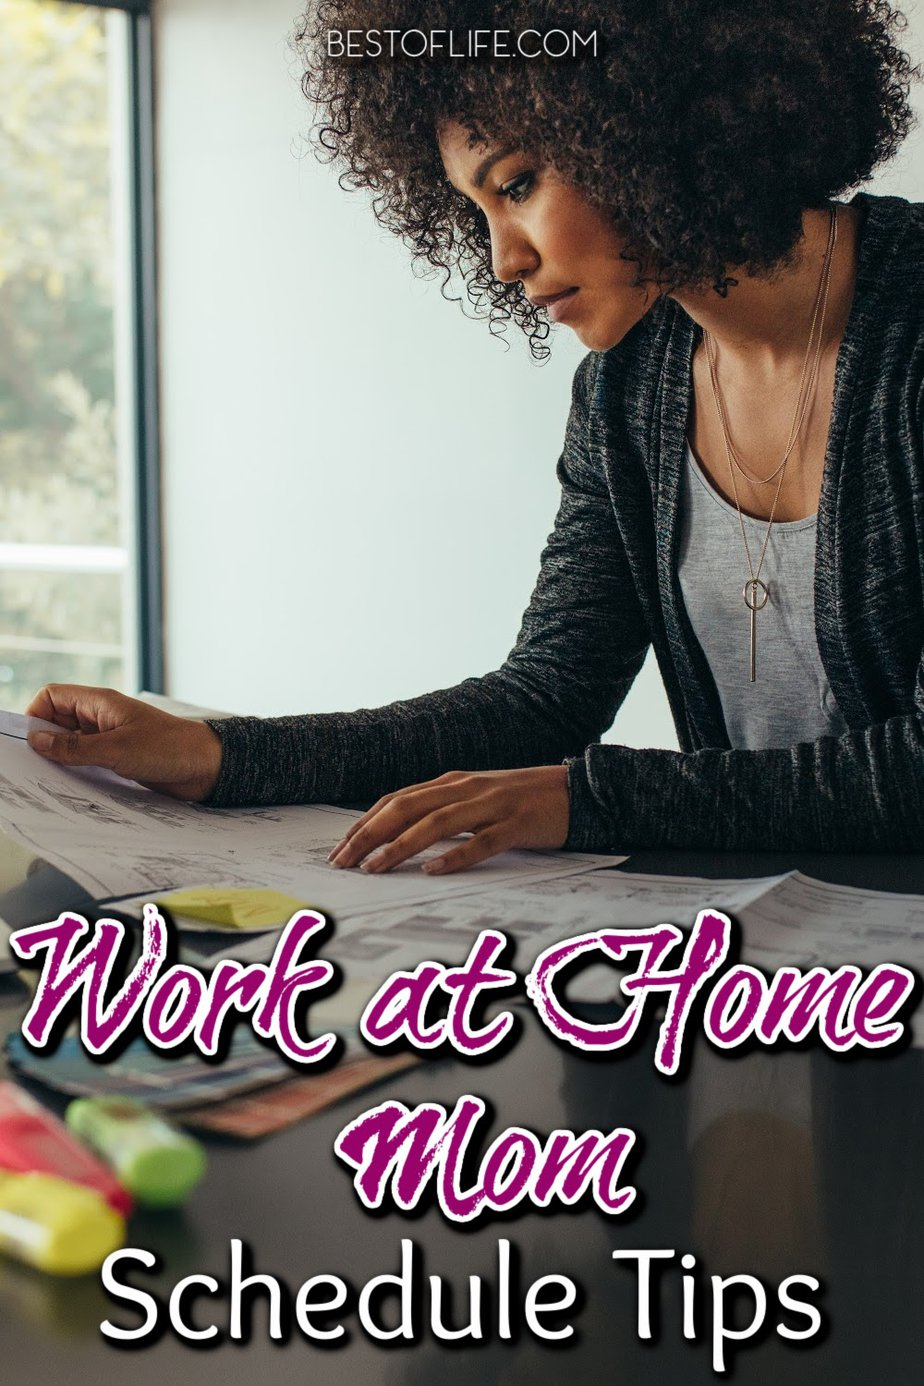 If you work from home, you can be happier and more motivated each day as long as you use the best work at home mom schedule tips. Time Management Tips for Moms | Work From Home Tips | Tips for Working from Home | Scheduling Ideas for Moms | Busy Mom Ideas #working #moms